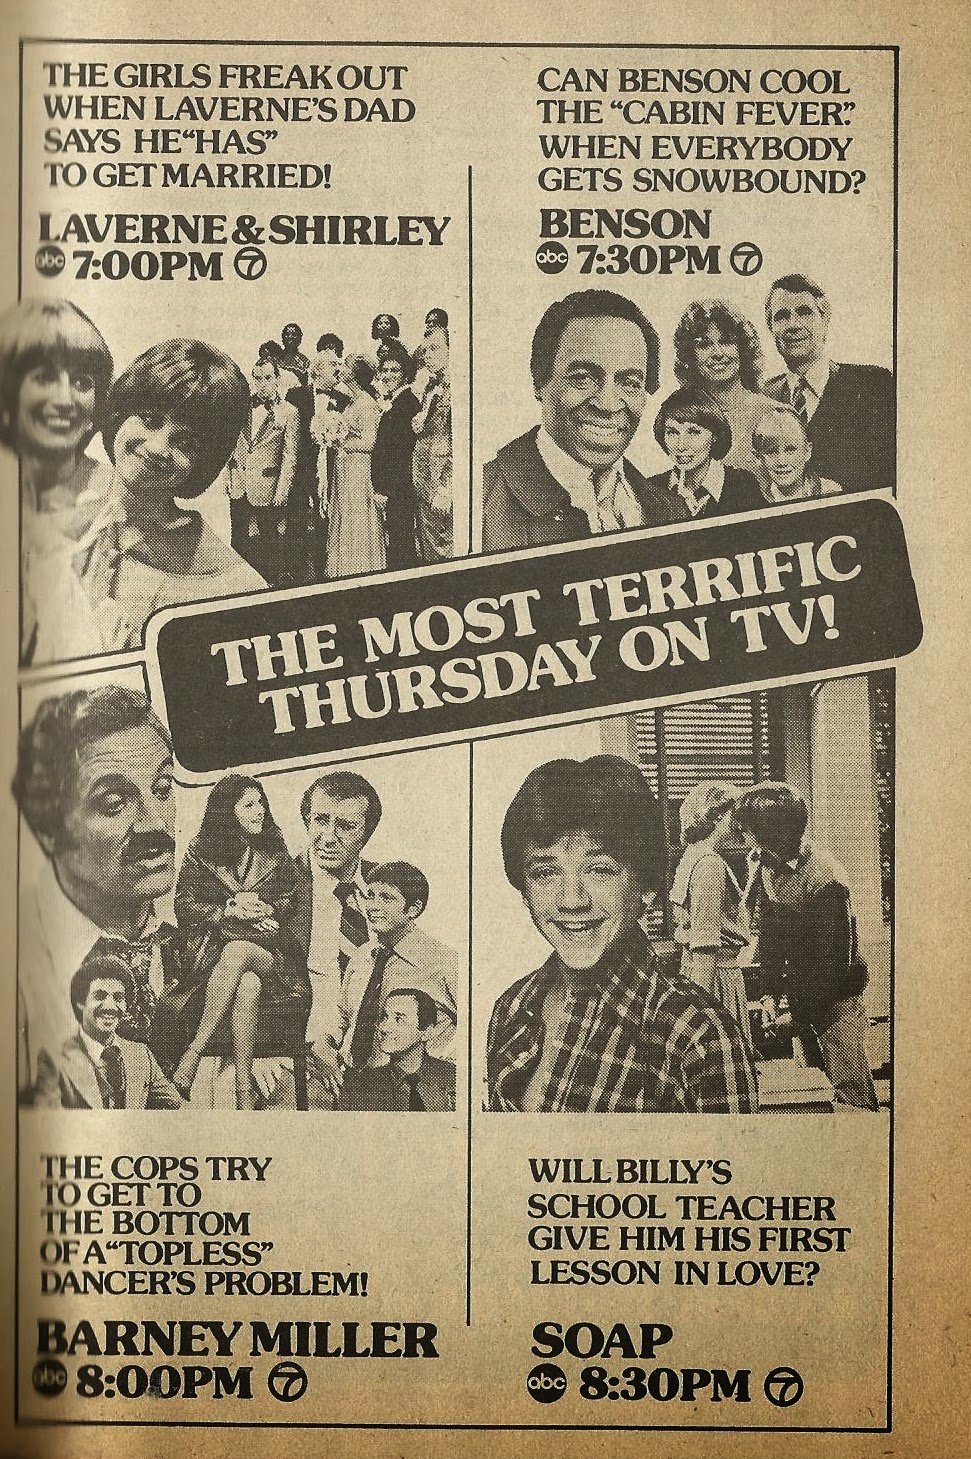 Abc television | the complete tv guide for abc1, abc2, abc3, abc.